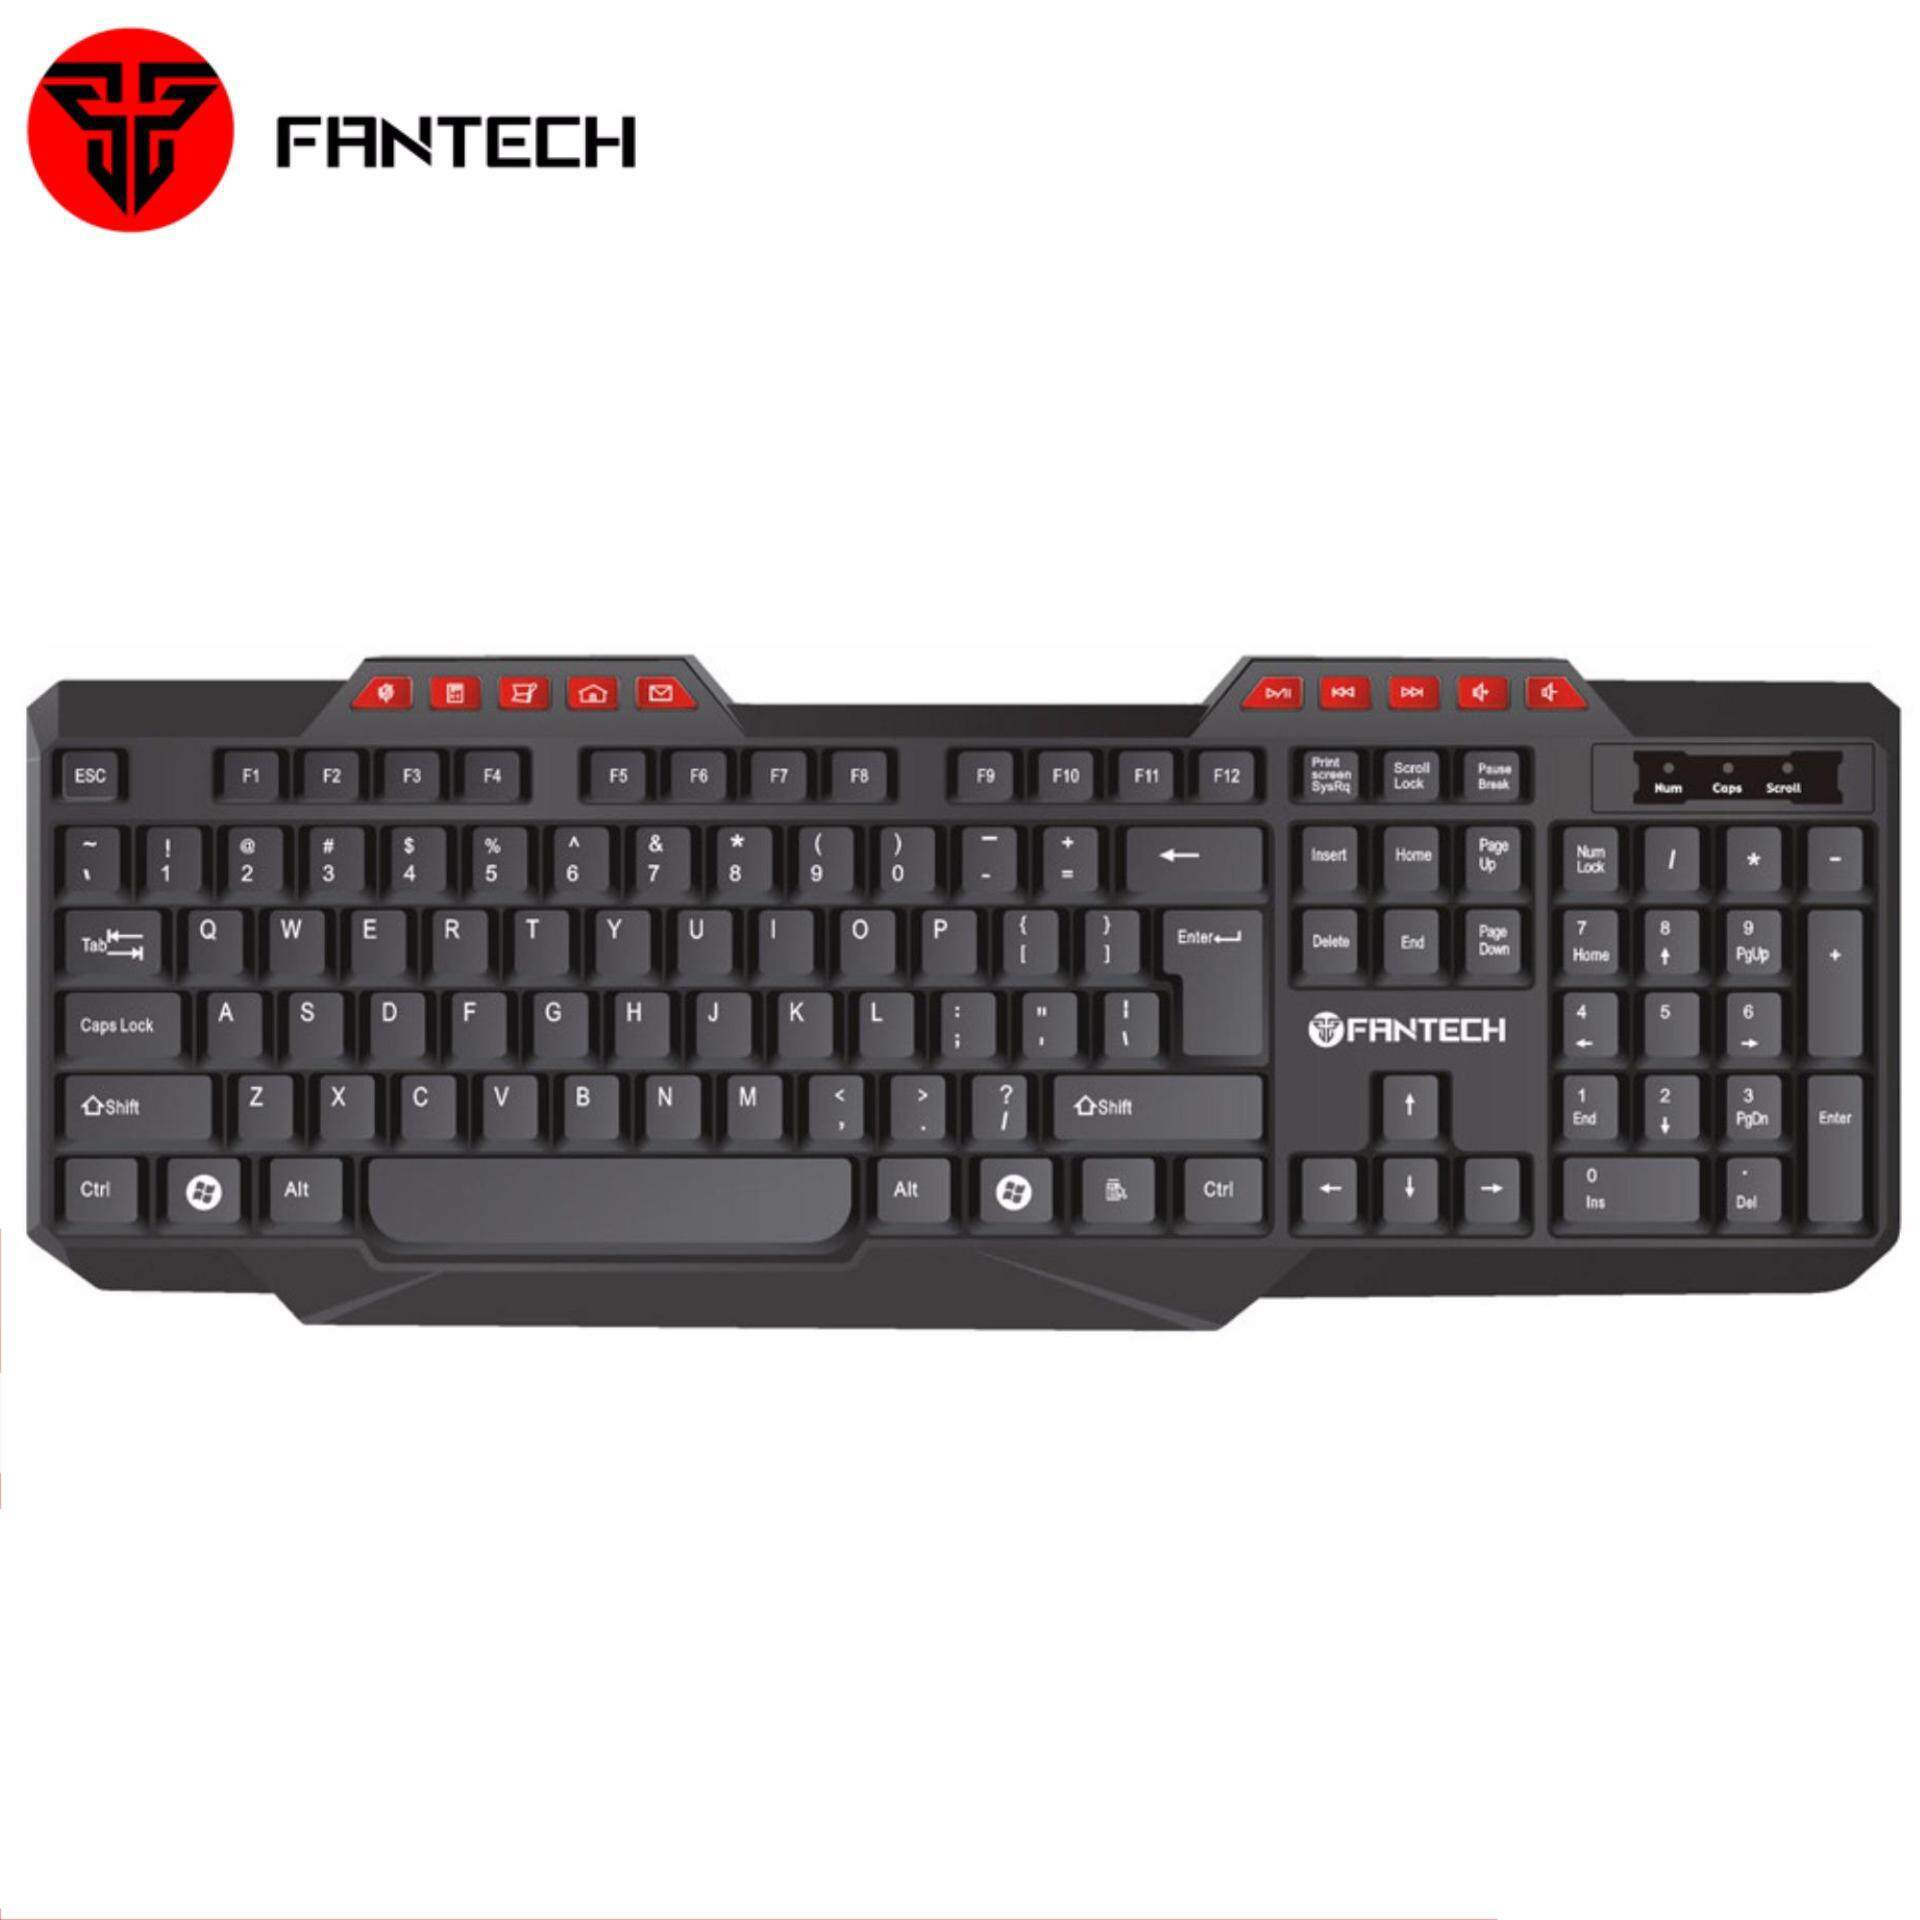 Basic Keyboards For The Best Prices In Malaysia Keyboard Laptop Acer Aspire E1 421 421g 431 431g 471 Fantech Sp16 K210 Multimedia Office 114 Key Wired Usb 20 Pc